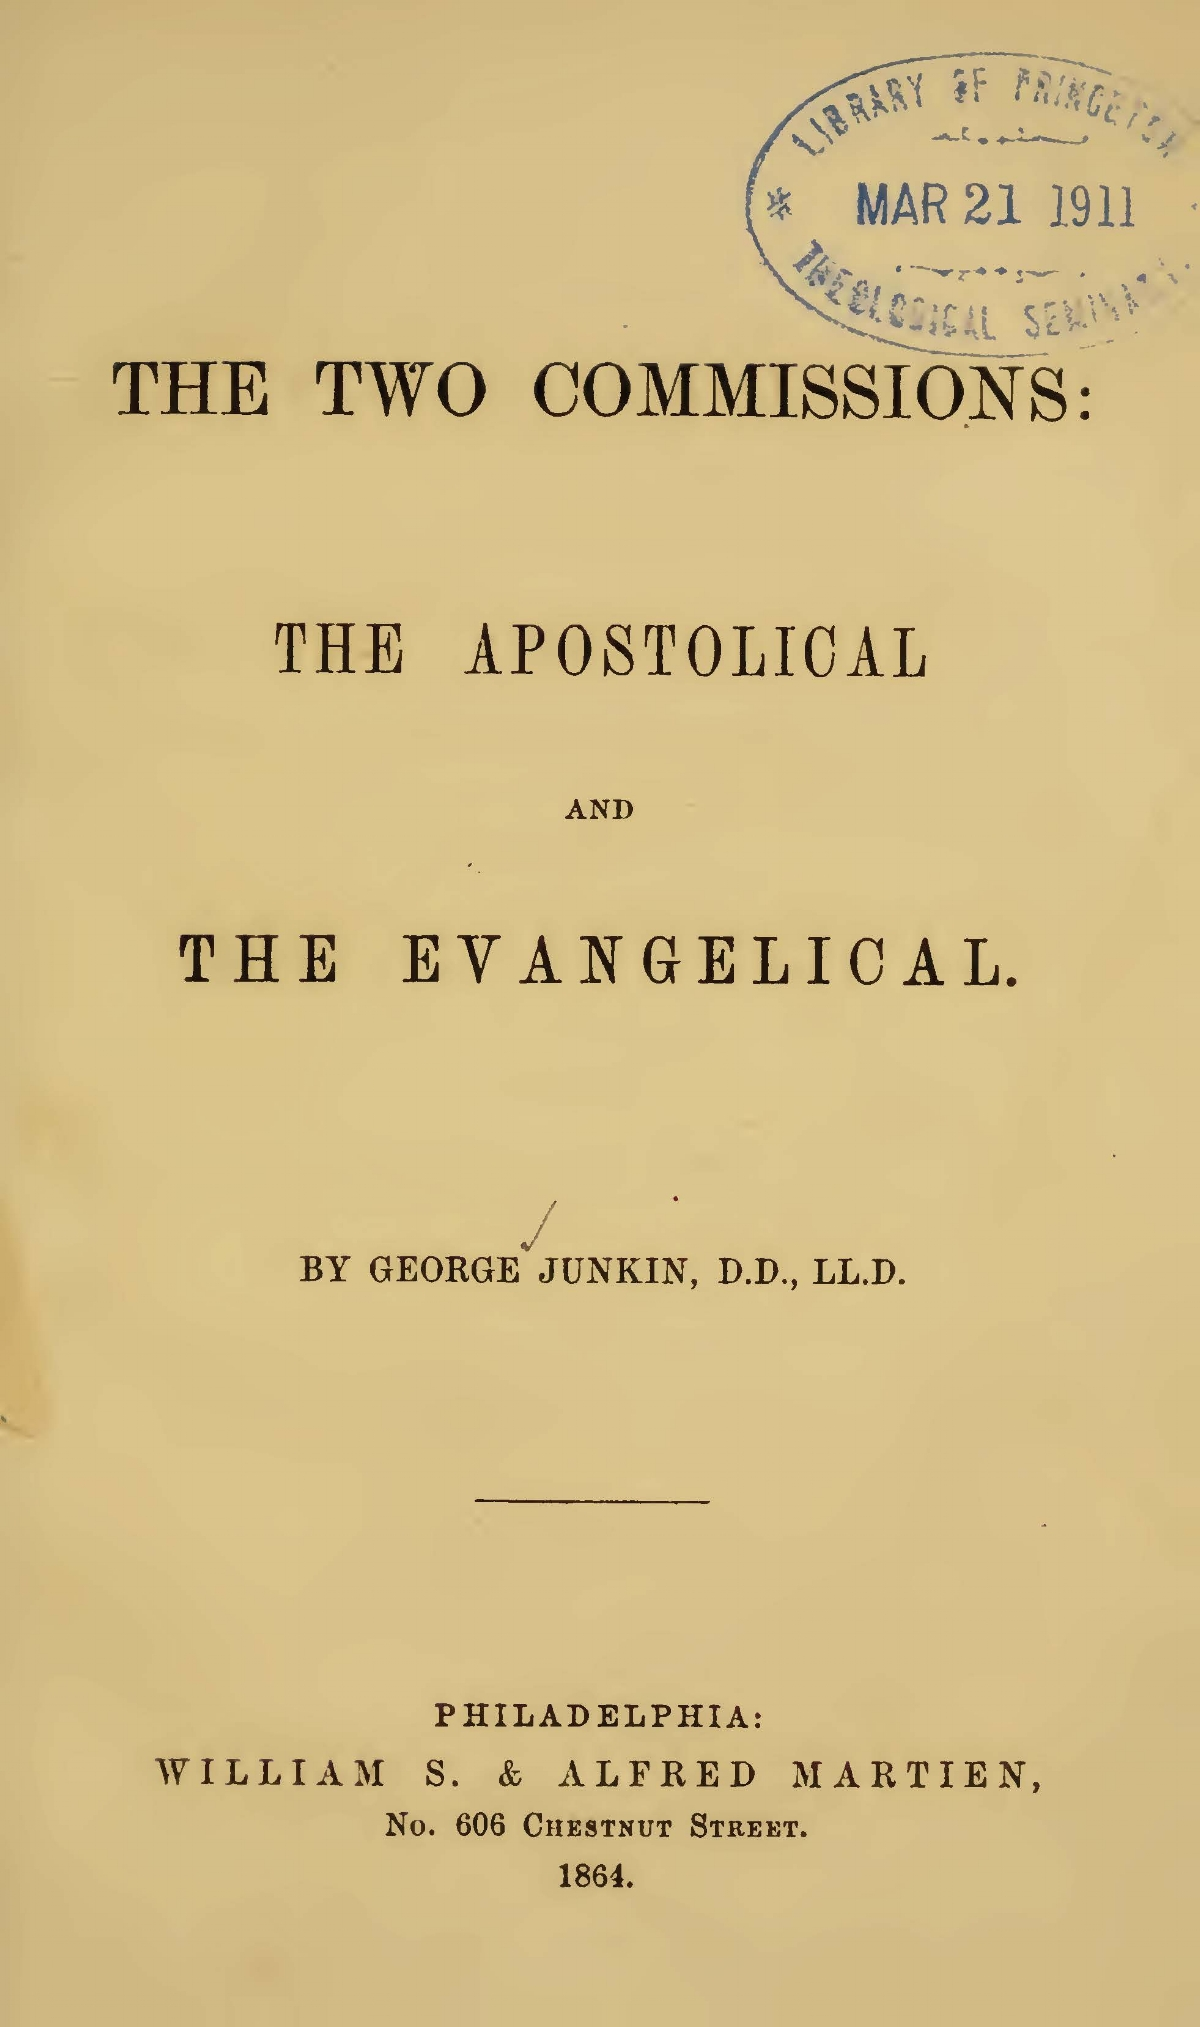 Junkin, George, The Two Commissions The Apostolical and the Evangelical Title Page.jpg